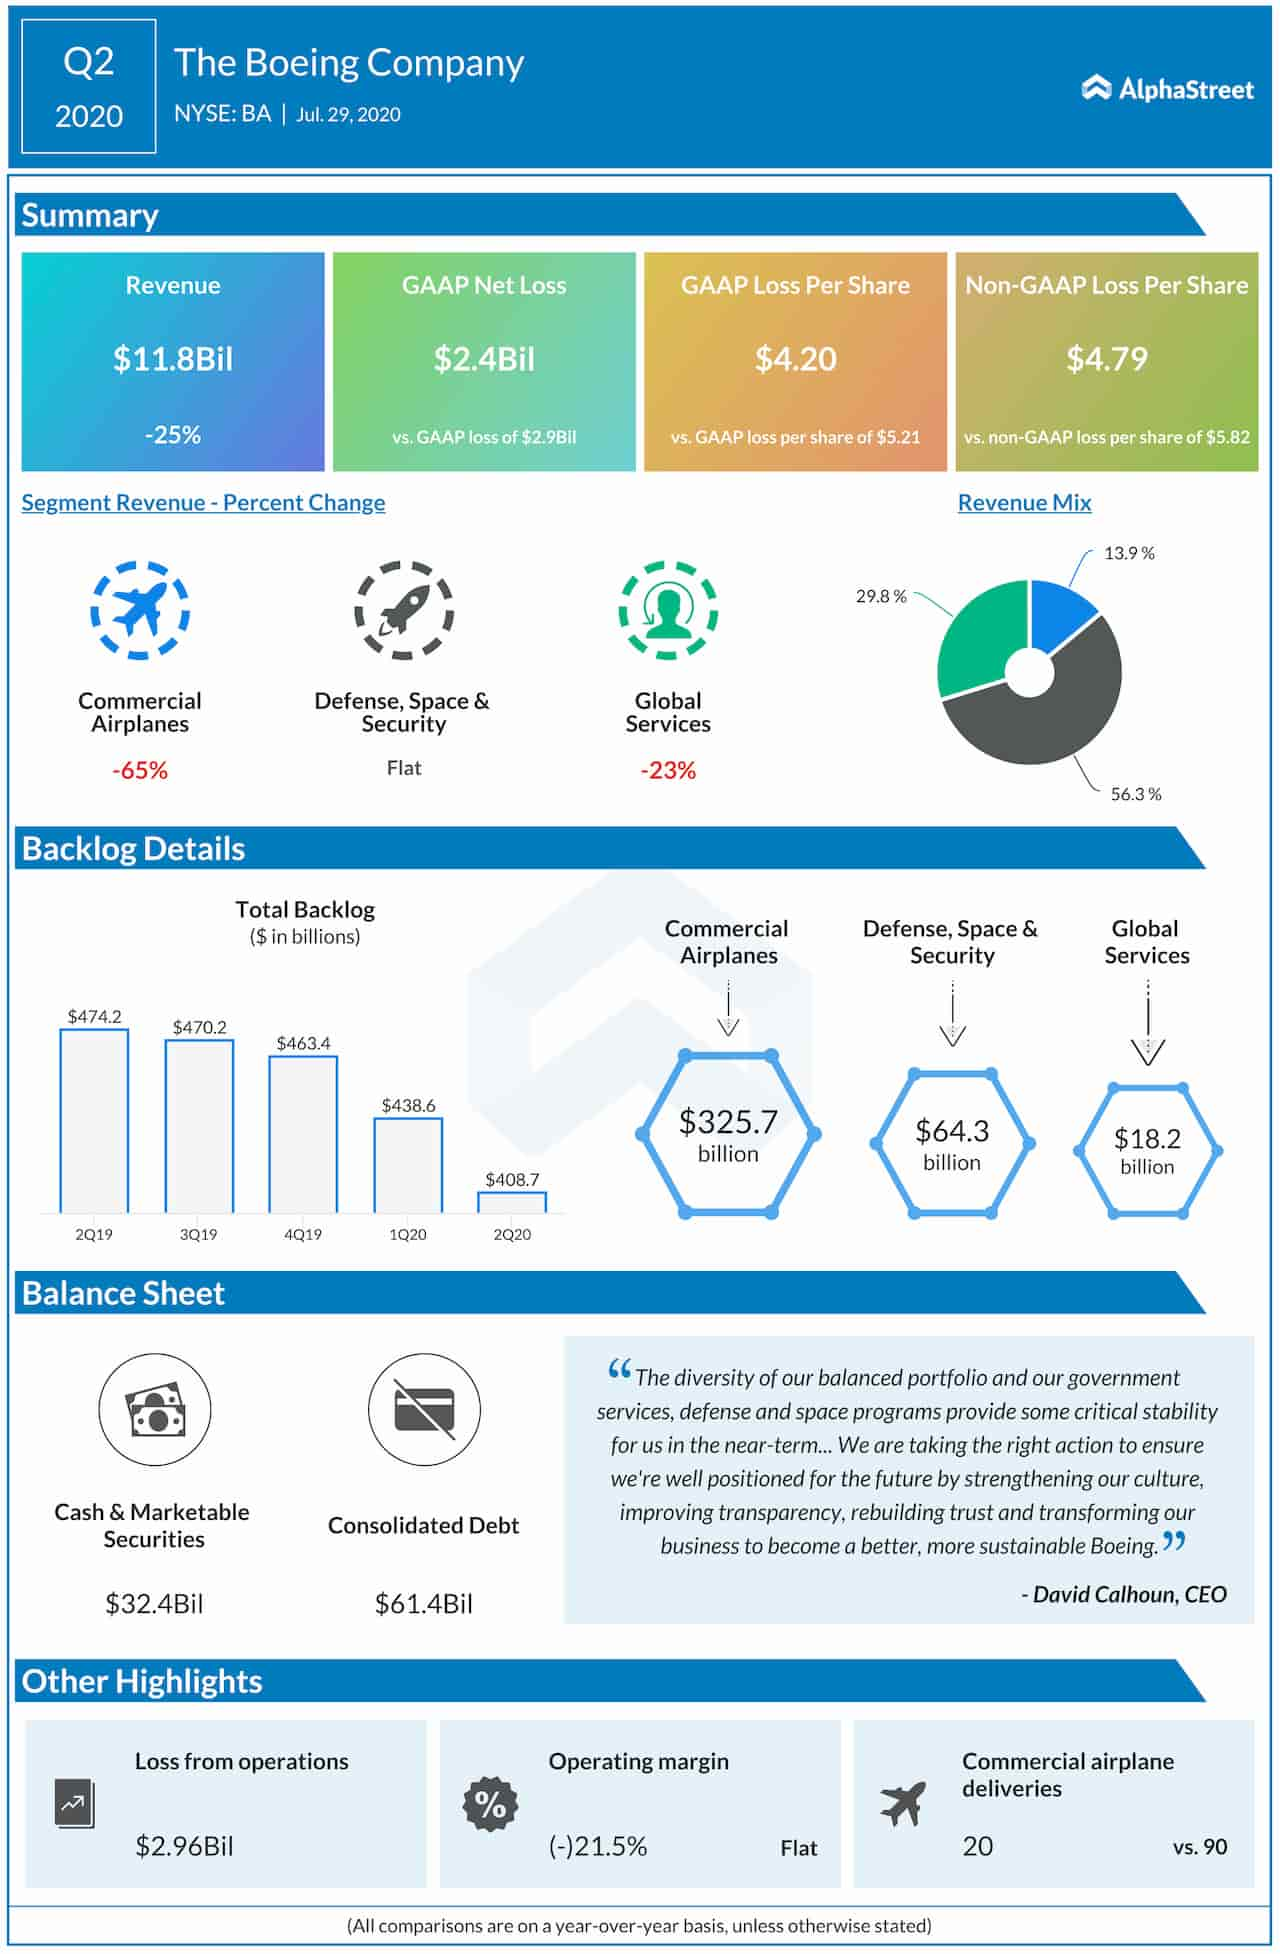 Boeing Company Q2 2020 earnings infographic